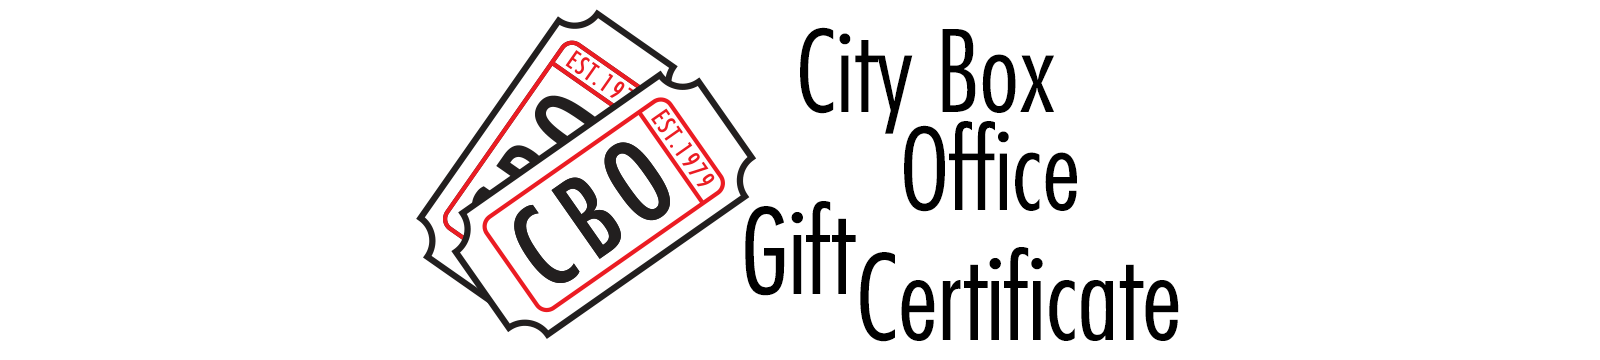 City Box Office Gift Certificate